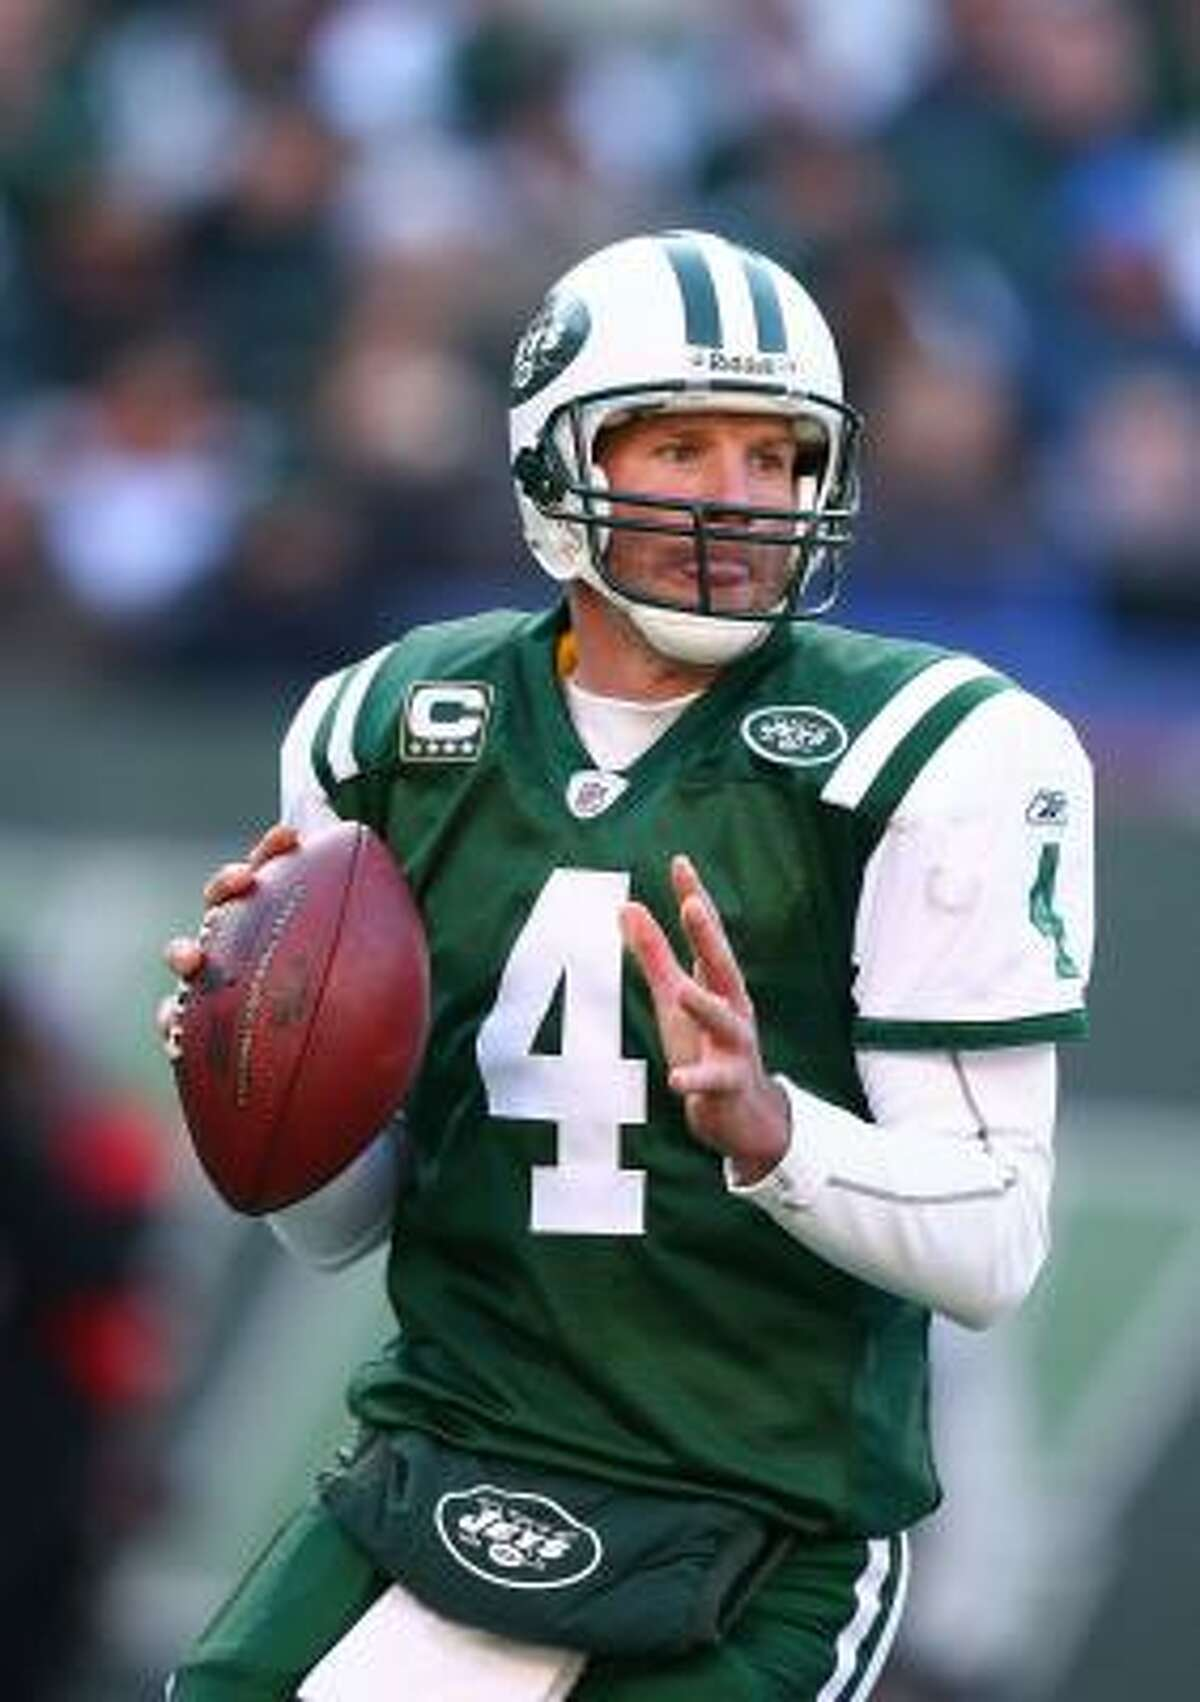 Brett Favre, New York Jets Year: 2008 Age: 39 Record: 9-7 Completions: 343 Attempts: 522 Completion pct: 65.7% Yards: 3,472 Touchdowns: 22 Interceptions: 22